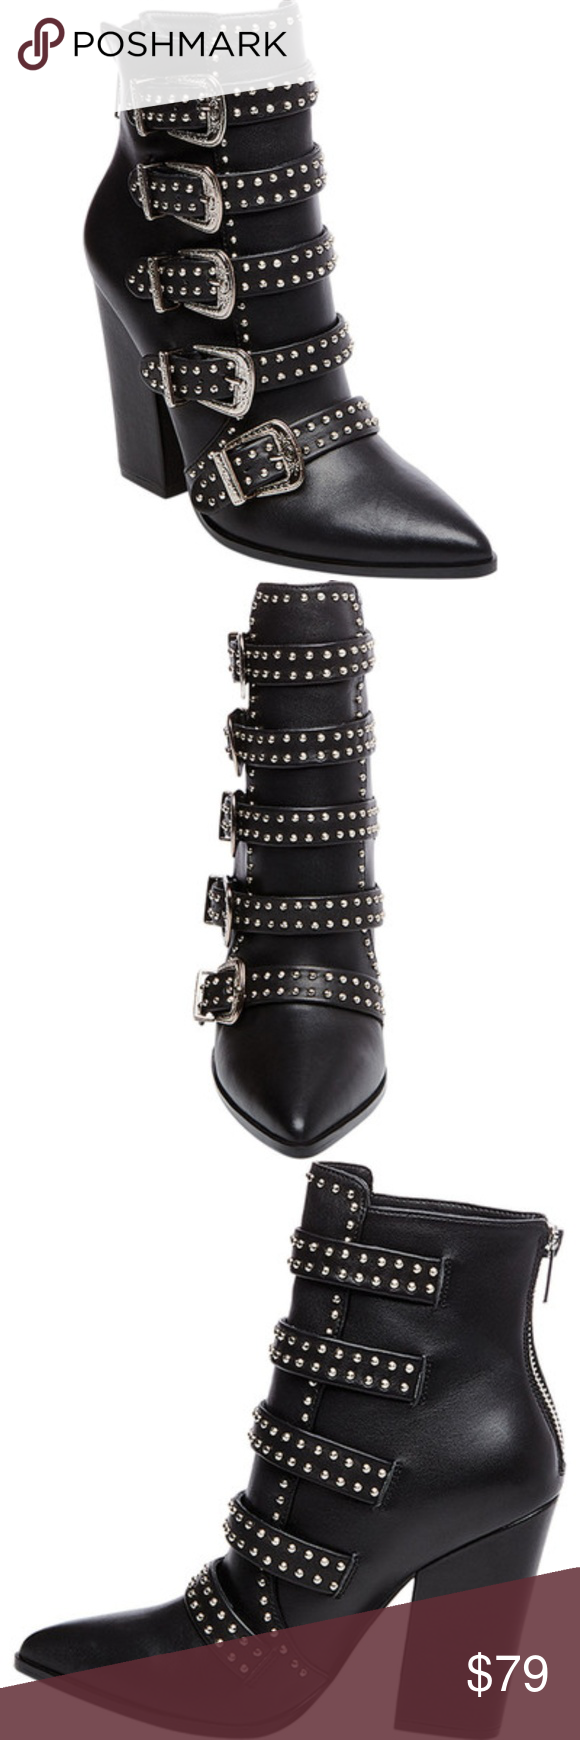 1dee5139918 STEVE MADDEN **Comet Bootie** Size 8 Leave your mark in the Steve ...